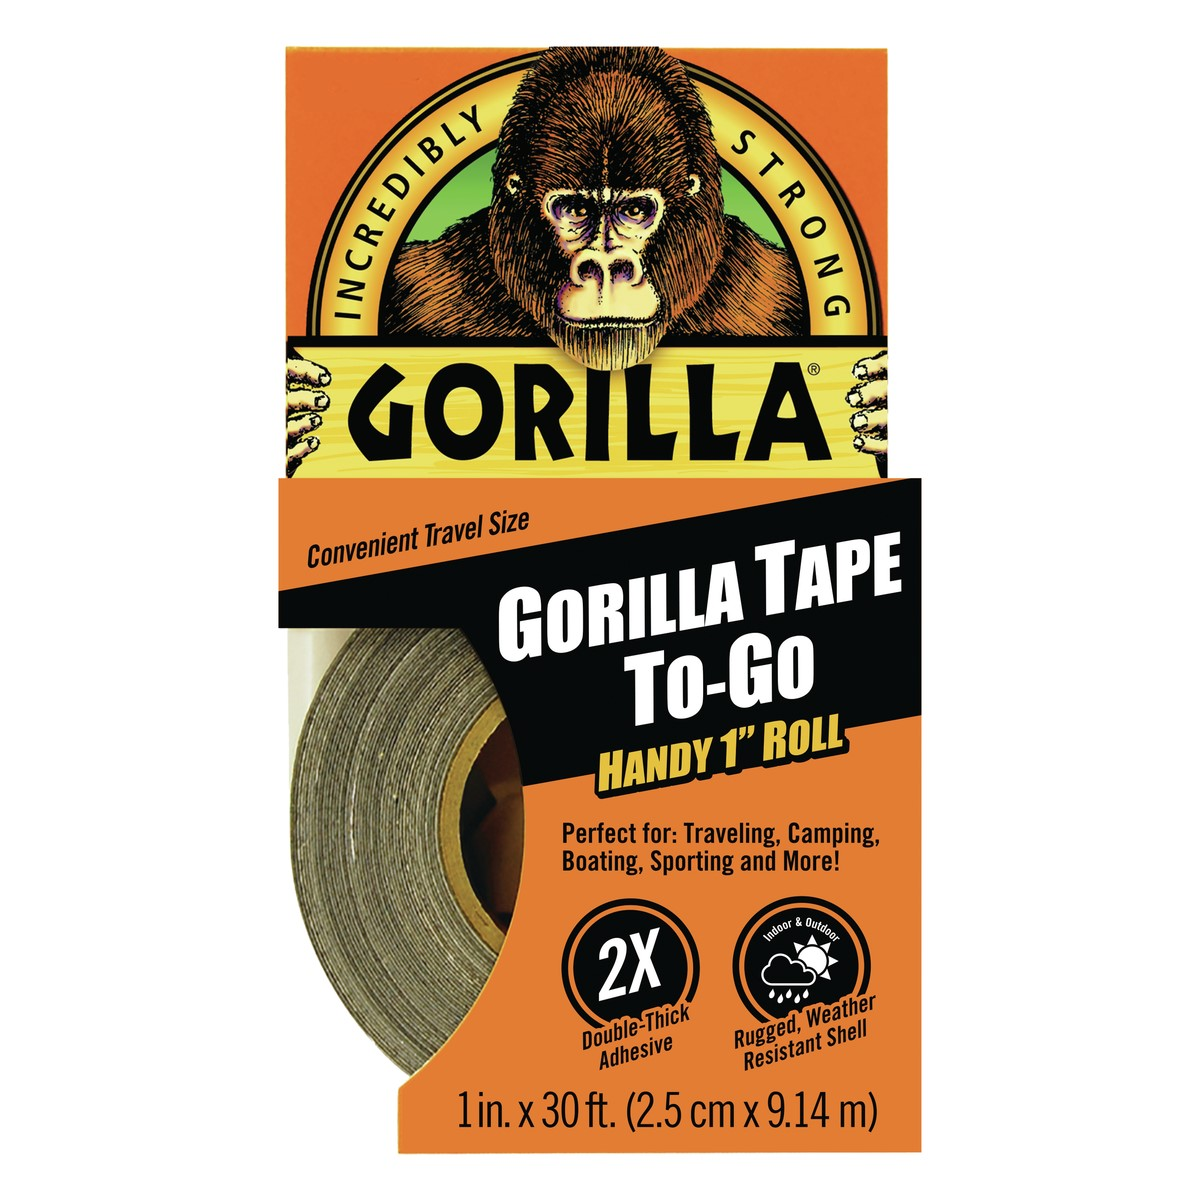 "Gorilla Tape To-Go Handy 1"" Roll, 30.0 FT"